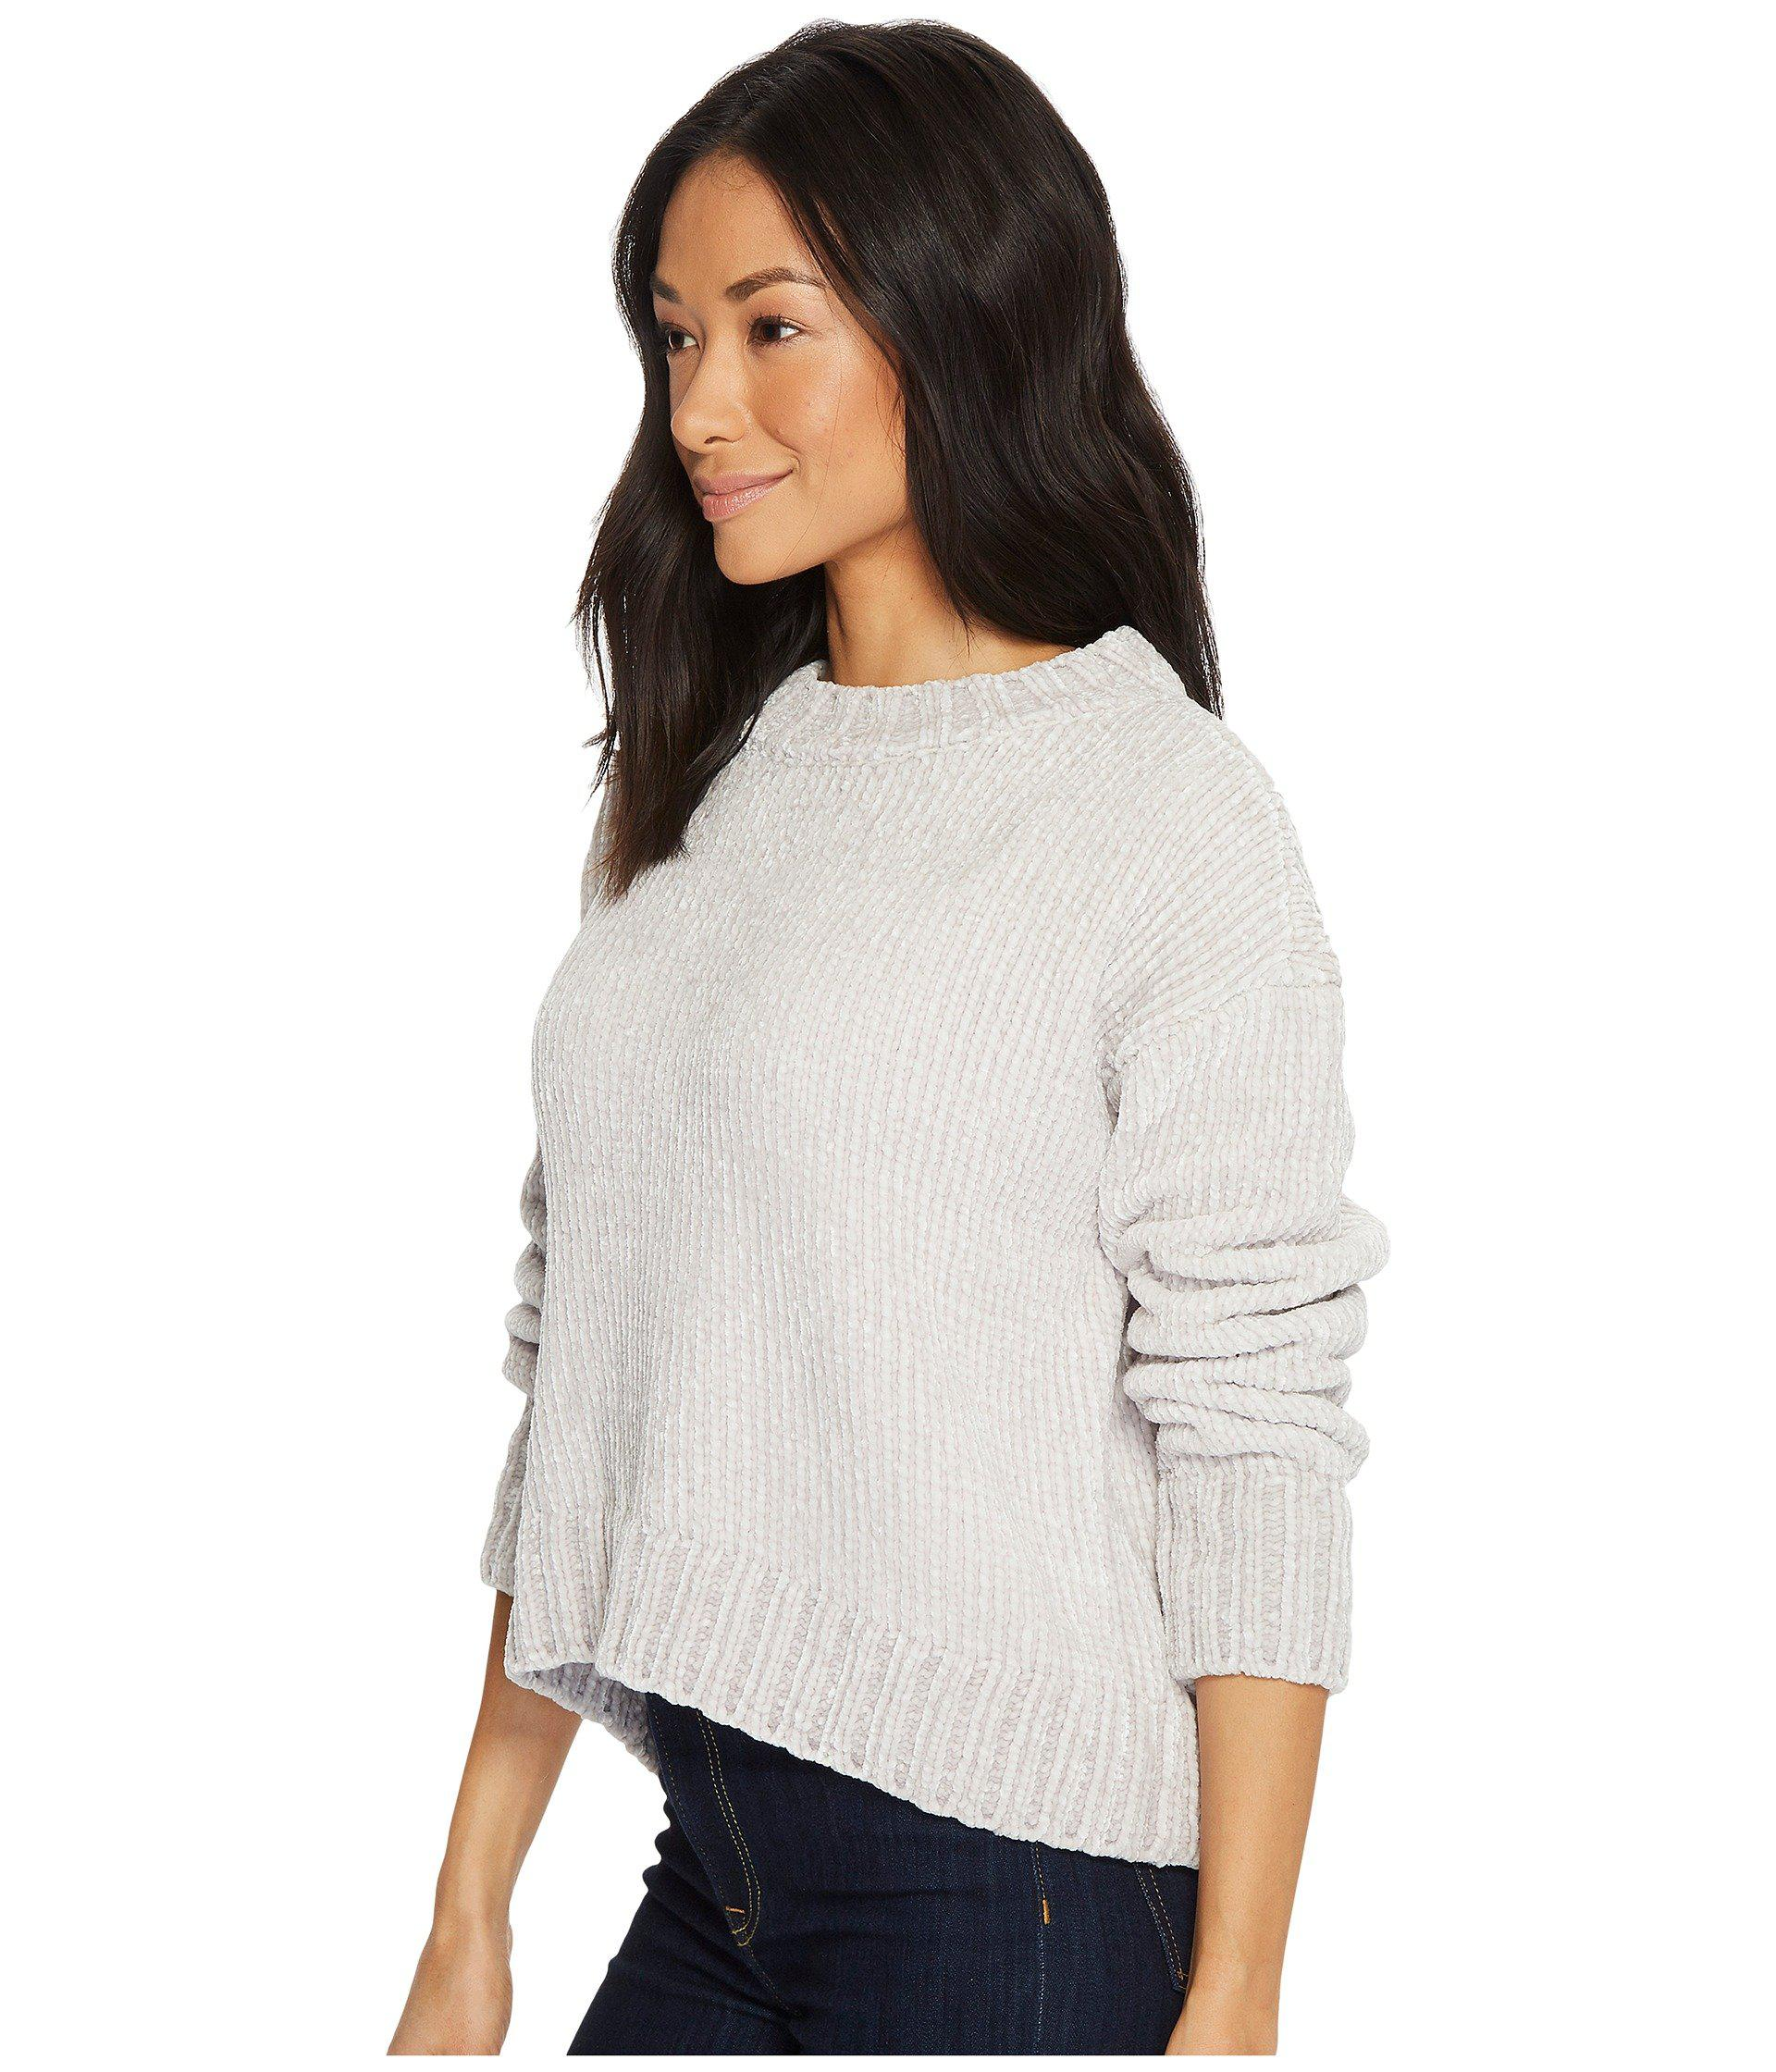 9d5eb6763efd2 Lyst - Sanctuary Chenille Pullover Sweater in White - Save 52%